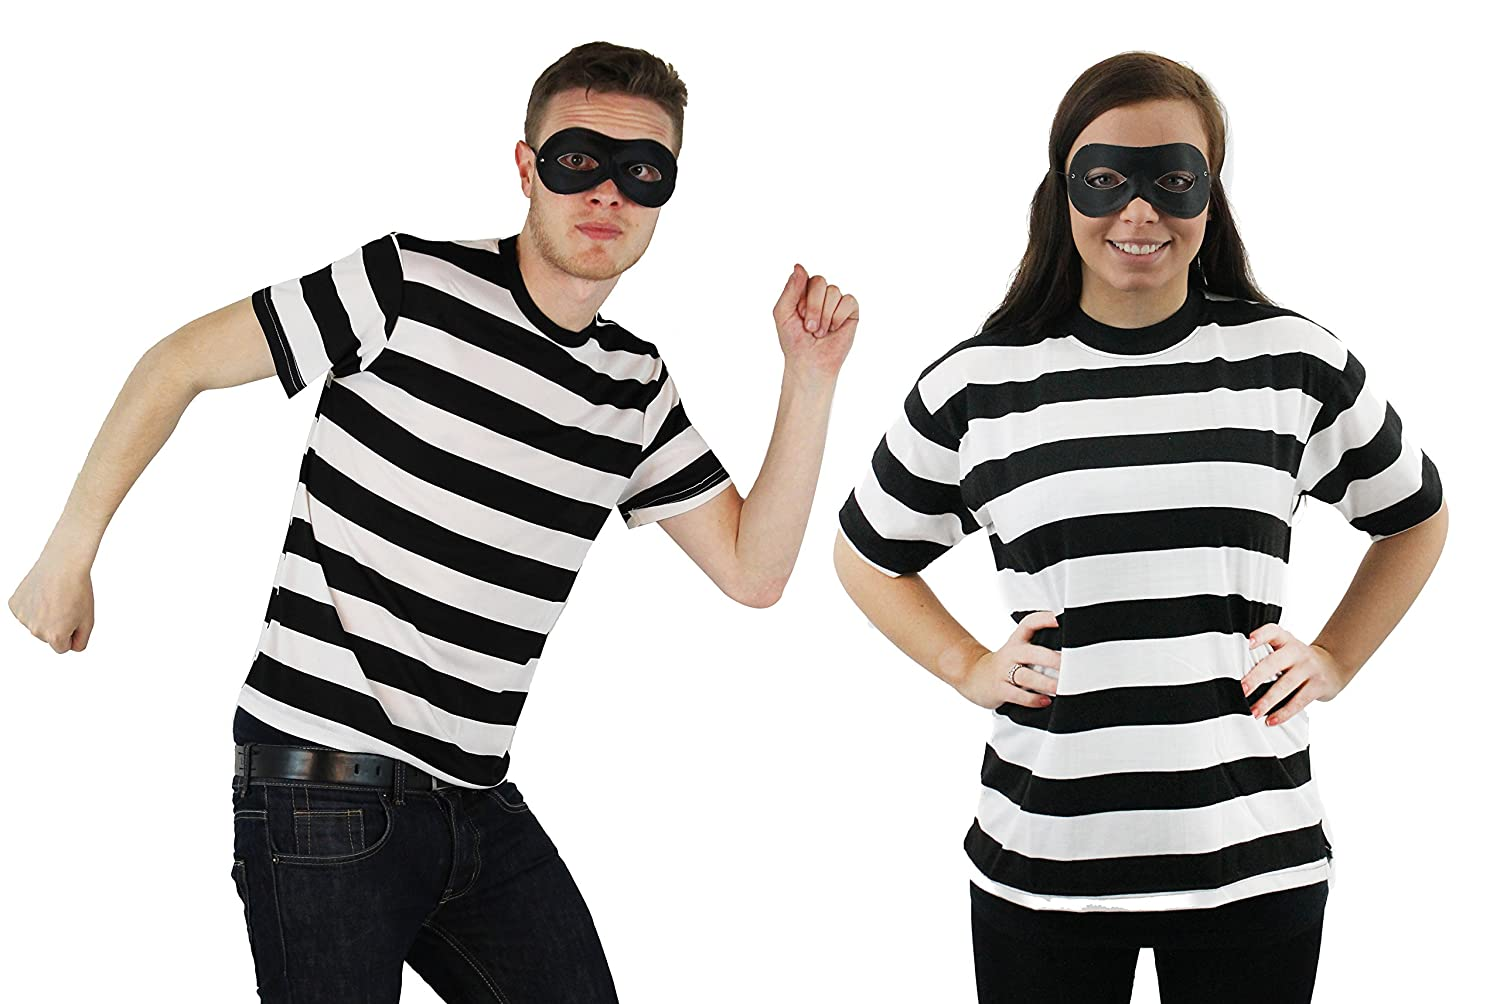 Classic Robber Burglar Couples Costume Set with Striped Tops and Eye Masks